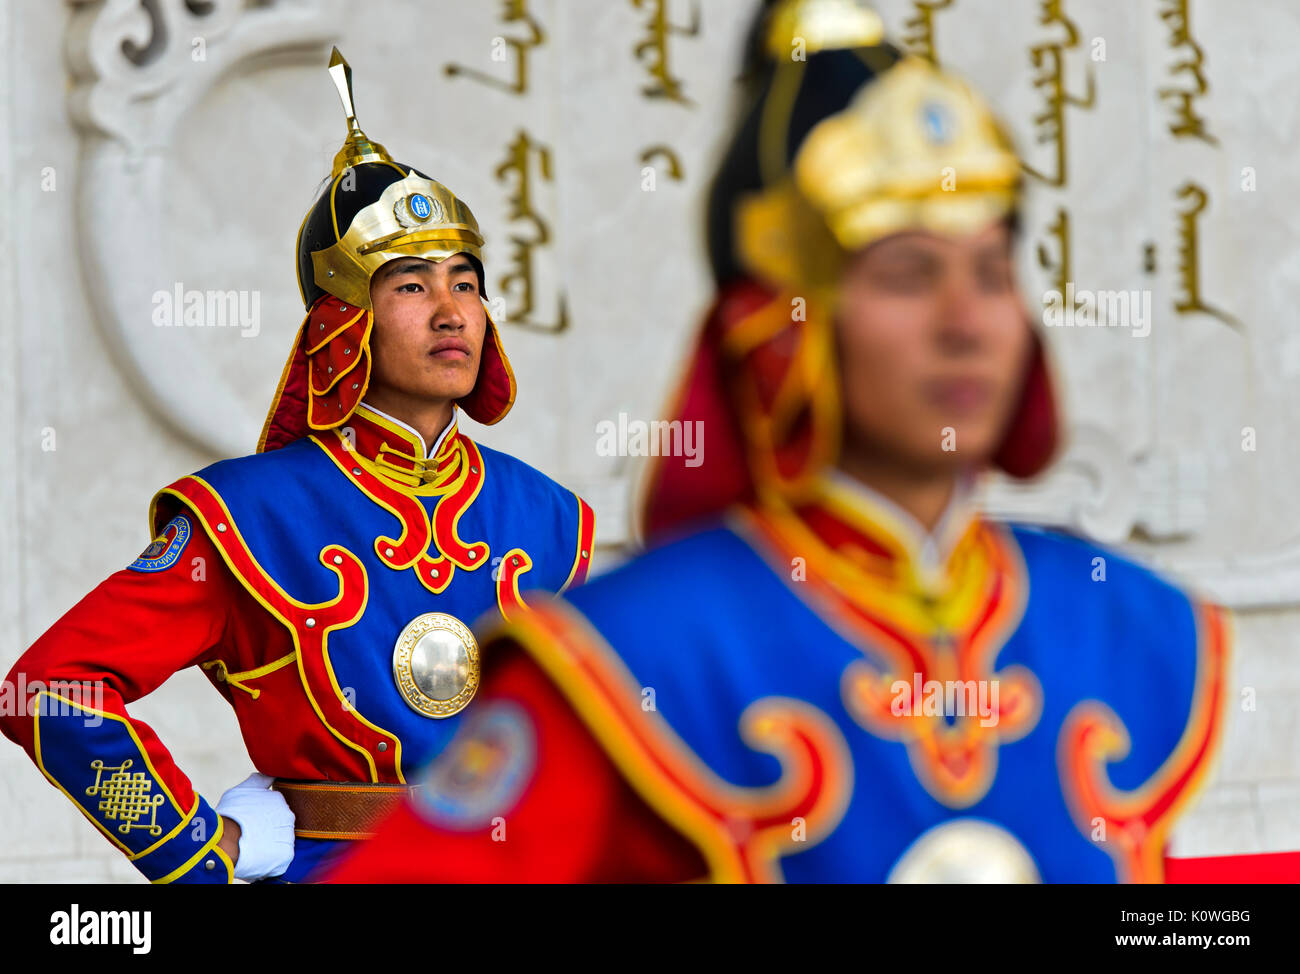 Guardsman of the Mongolian Armed Forces Honorary Guard in traditional uniform in front of the monument to Genghis Khan, Ulaanbaatar, Mongolia - Stock Image